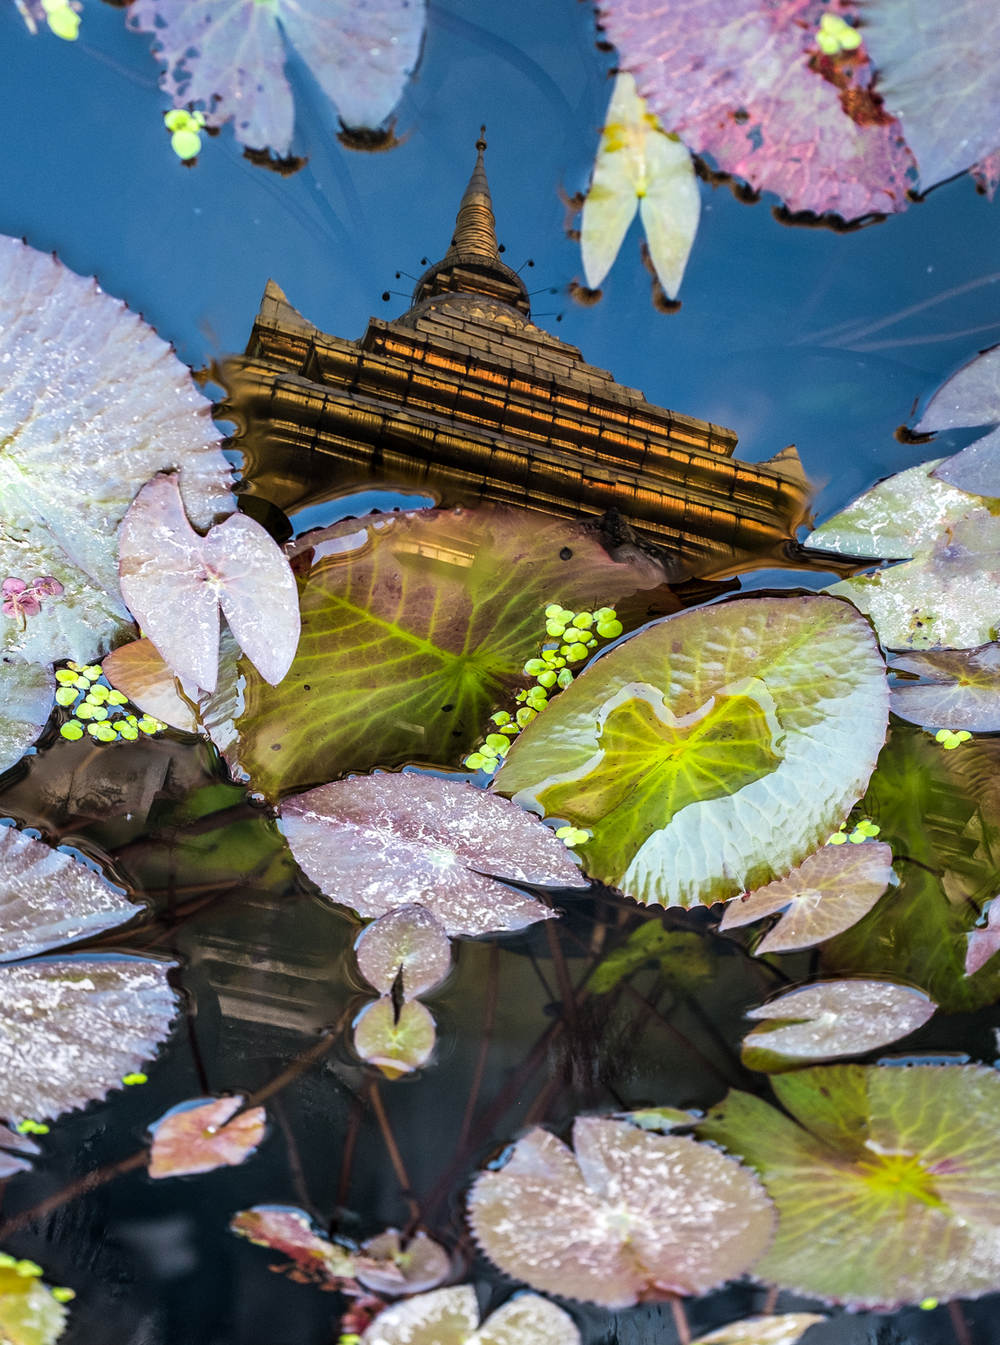 Dawn light illuminates the stupa,reflected in a lotus pot, at Chiang Mai's oldest wat, Chiang Man.